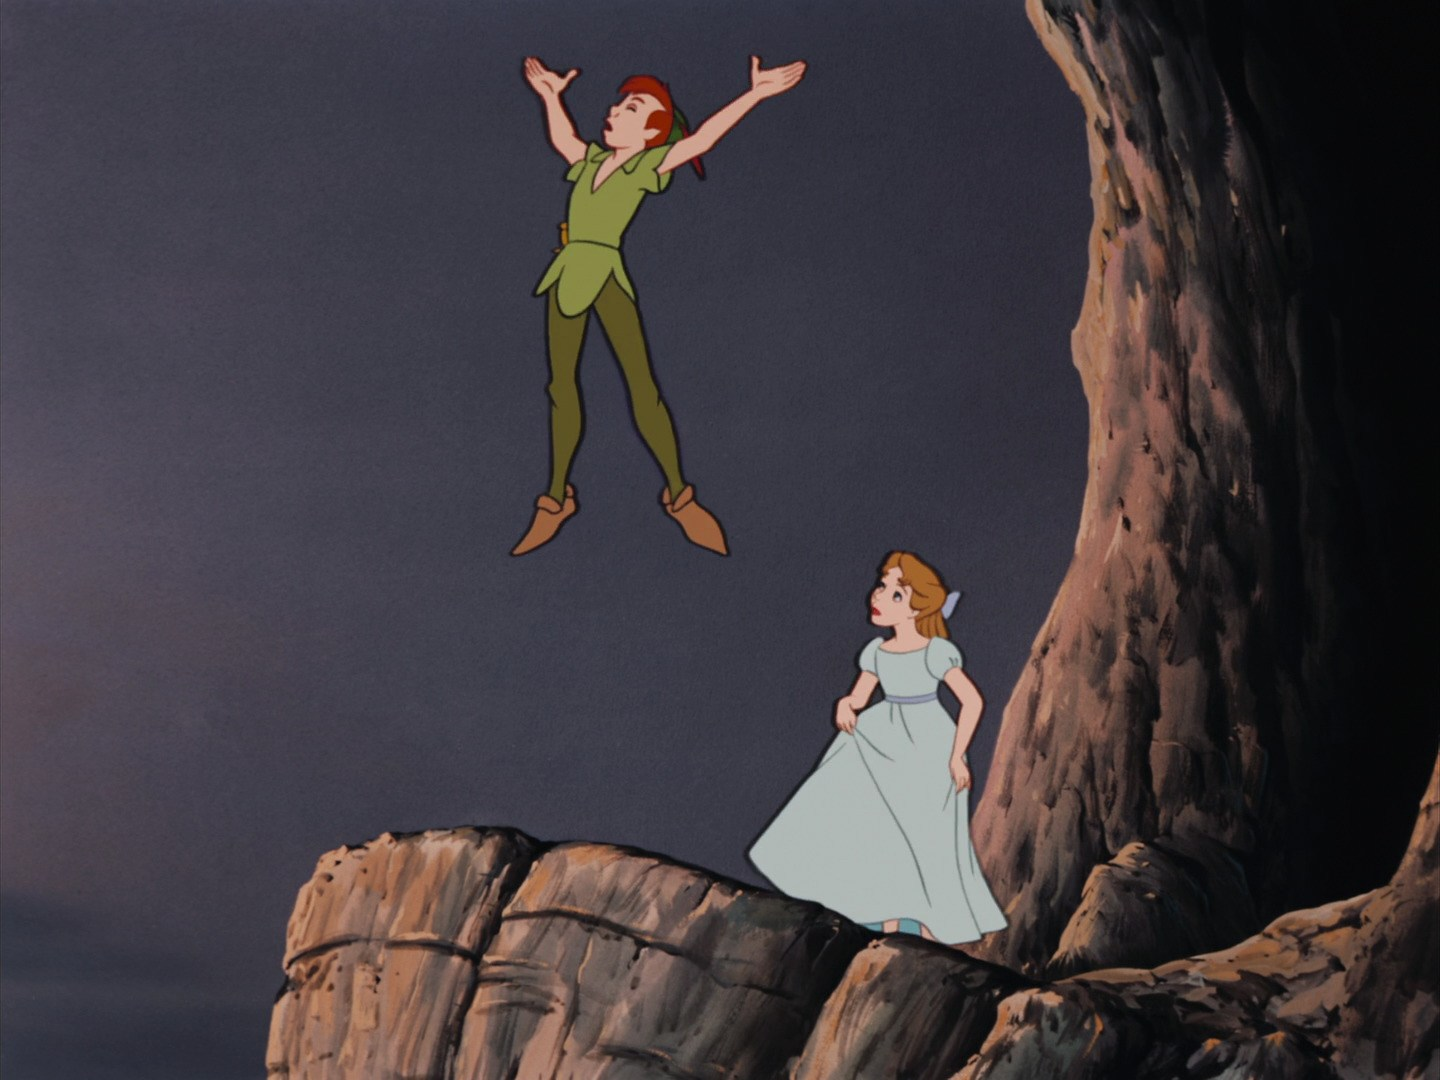 Peter Pan Imitates Rooster's Crow